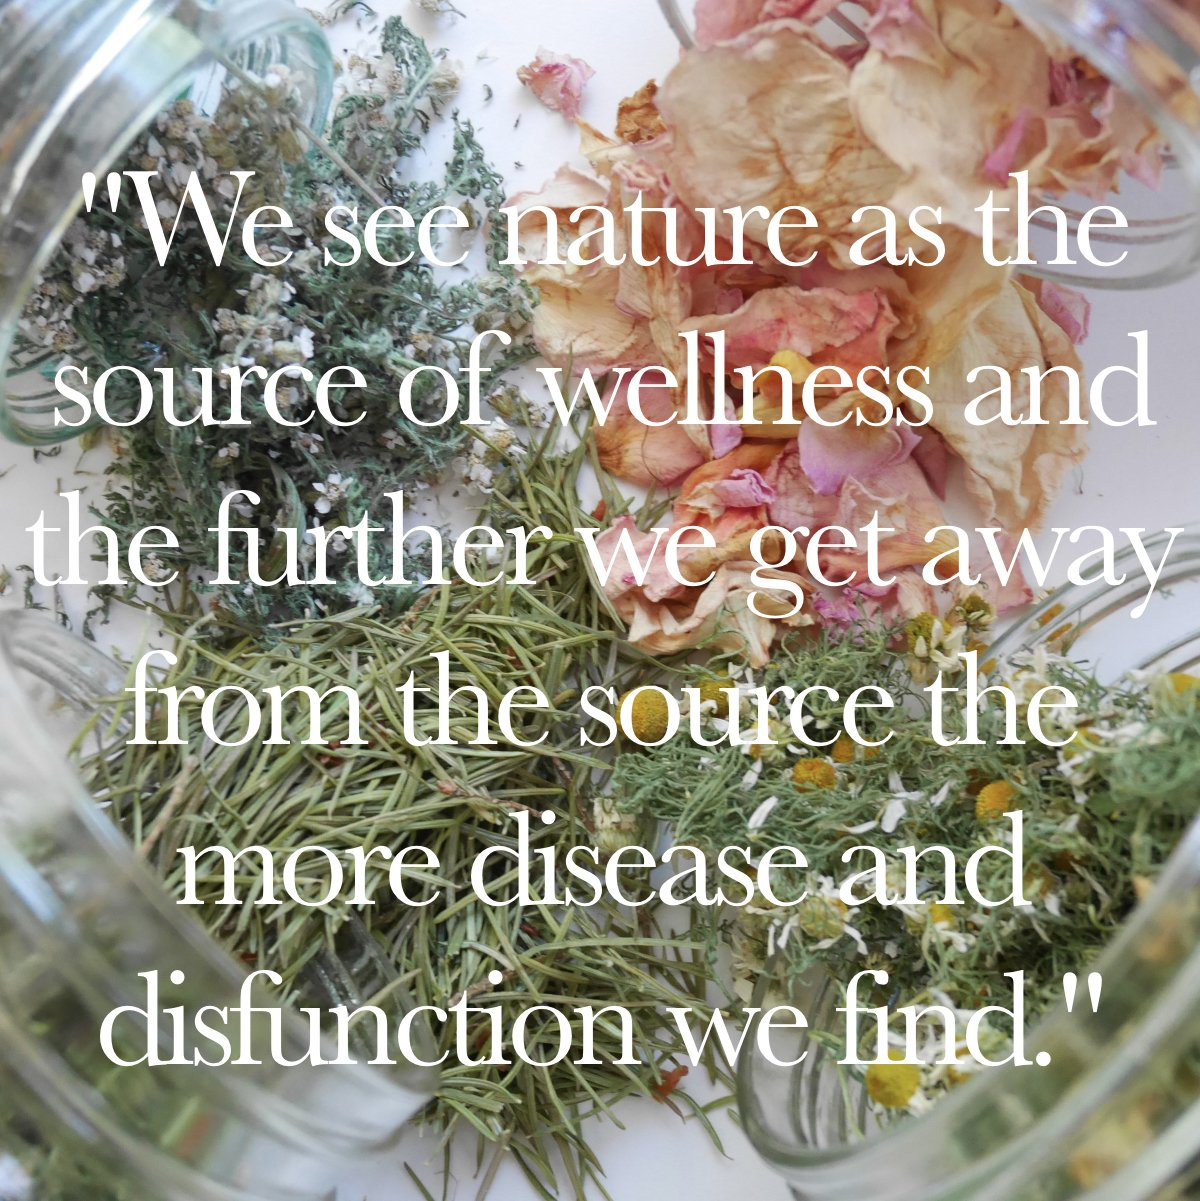 Nature Based Self Care : Holistic Perspectives, Pure Sourcing, and Whole Plants